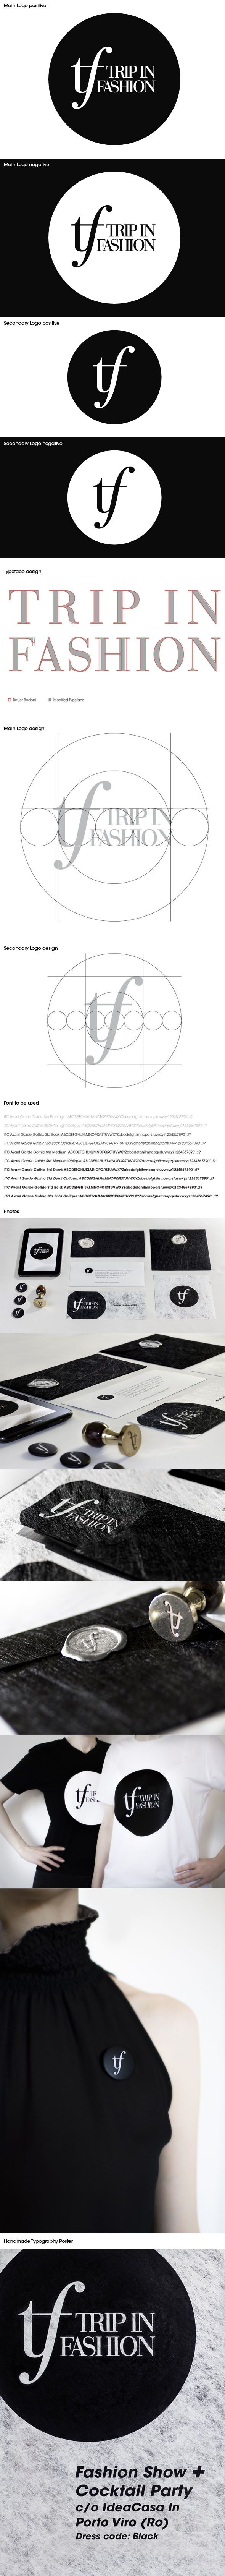 Trip in Fashion - Logo design - Event identity - Print design - invitations, envelopes with sealing wax, pins, stamp, handmade typography poster.